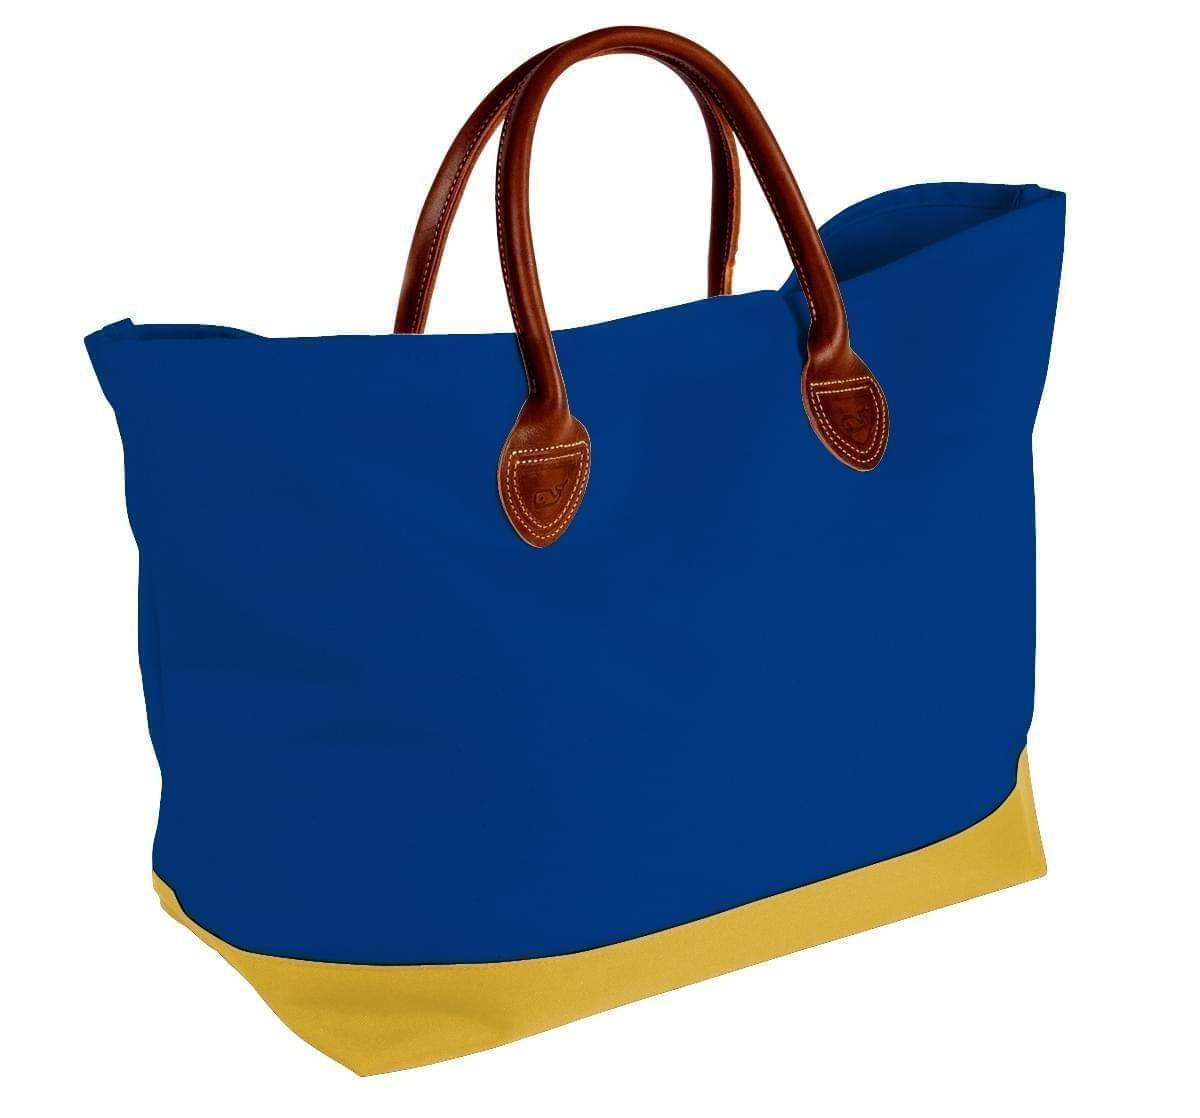 USA Made Canvas Leather Handle Totes, Royal Blue-Gold, 10899-QF9